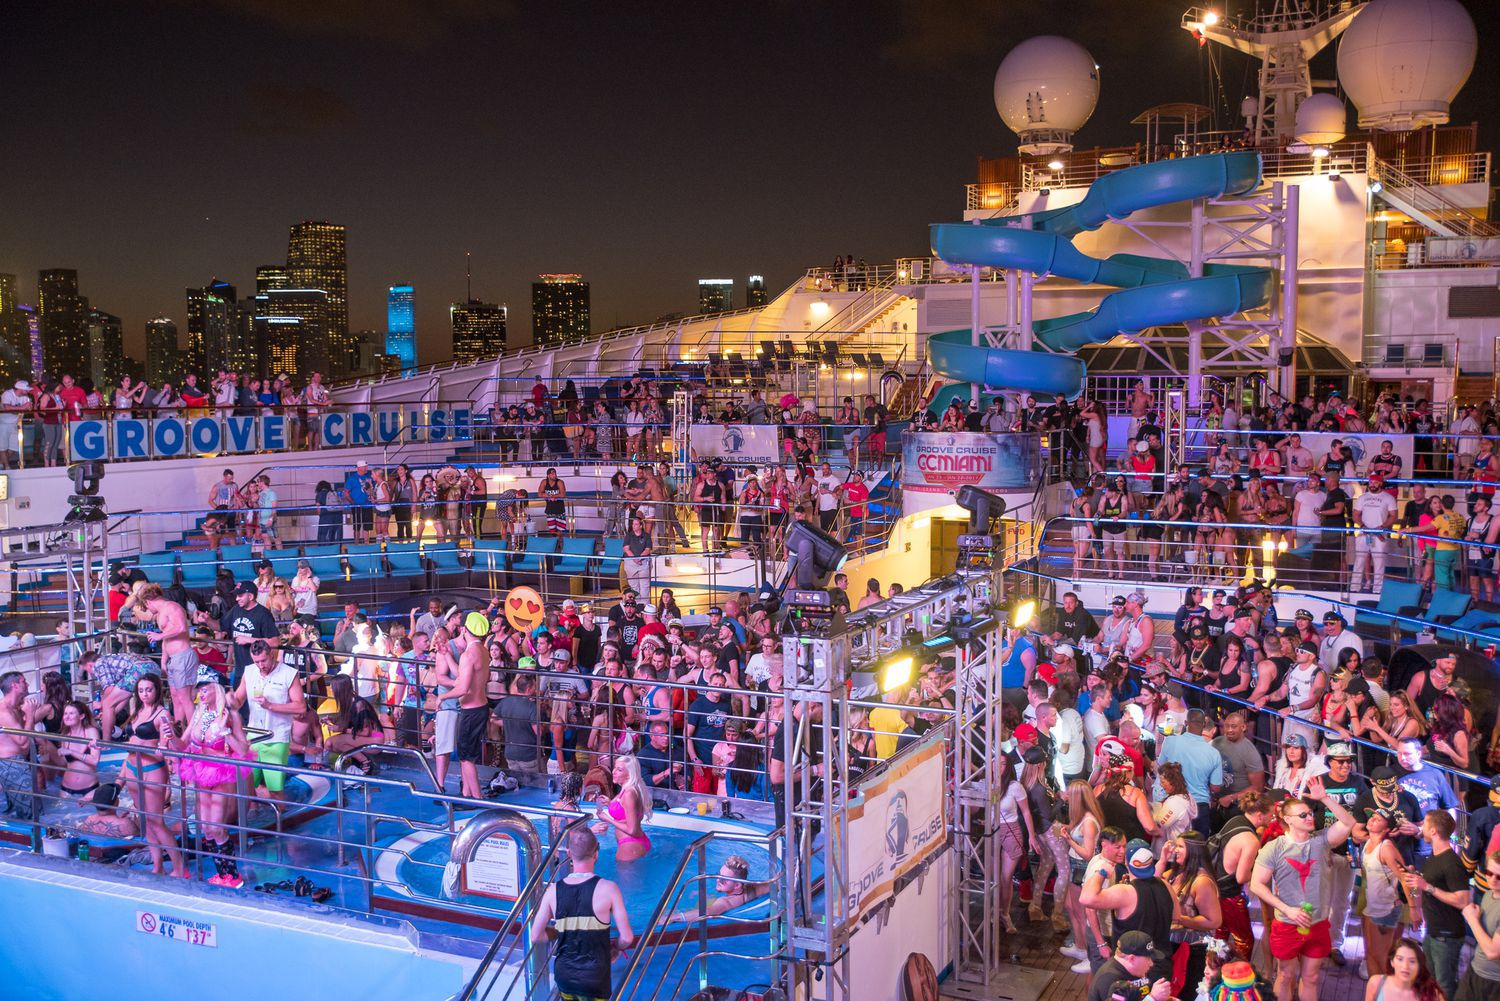 Groove Cruise - Best US Music Festivals 2020